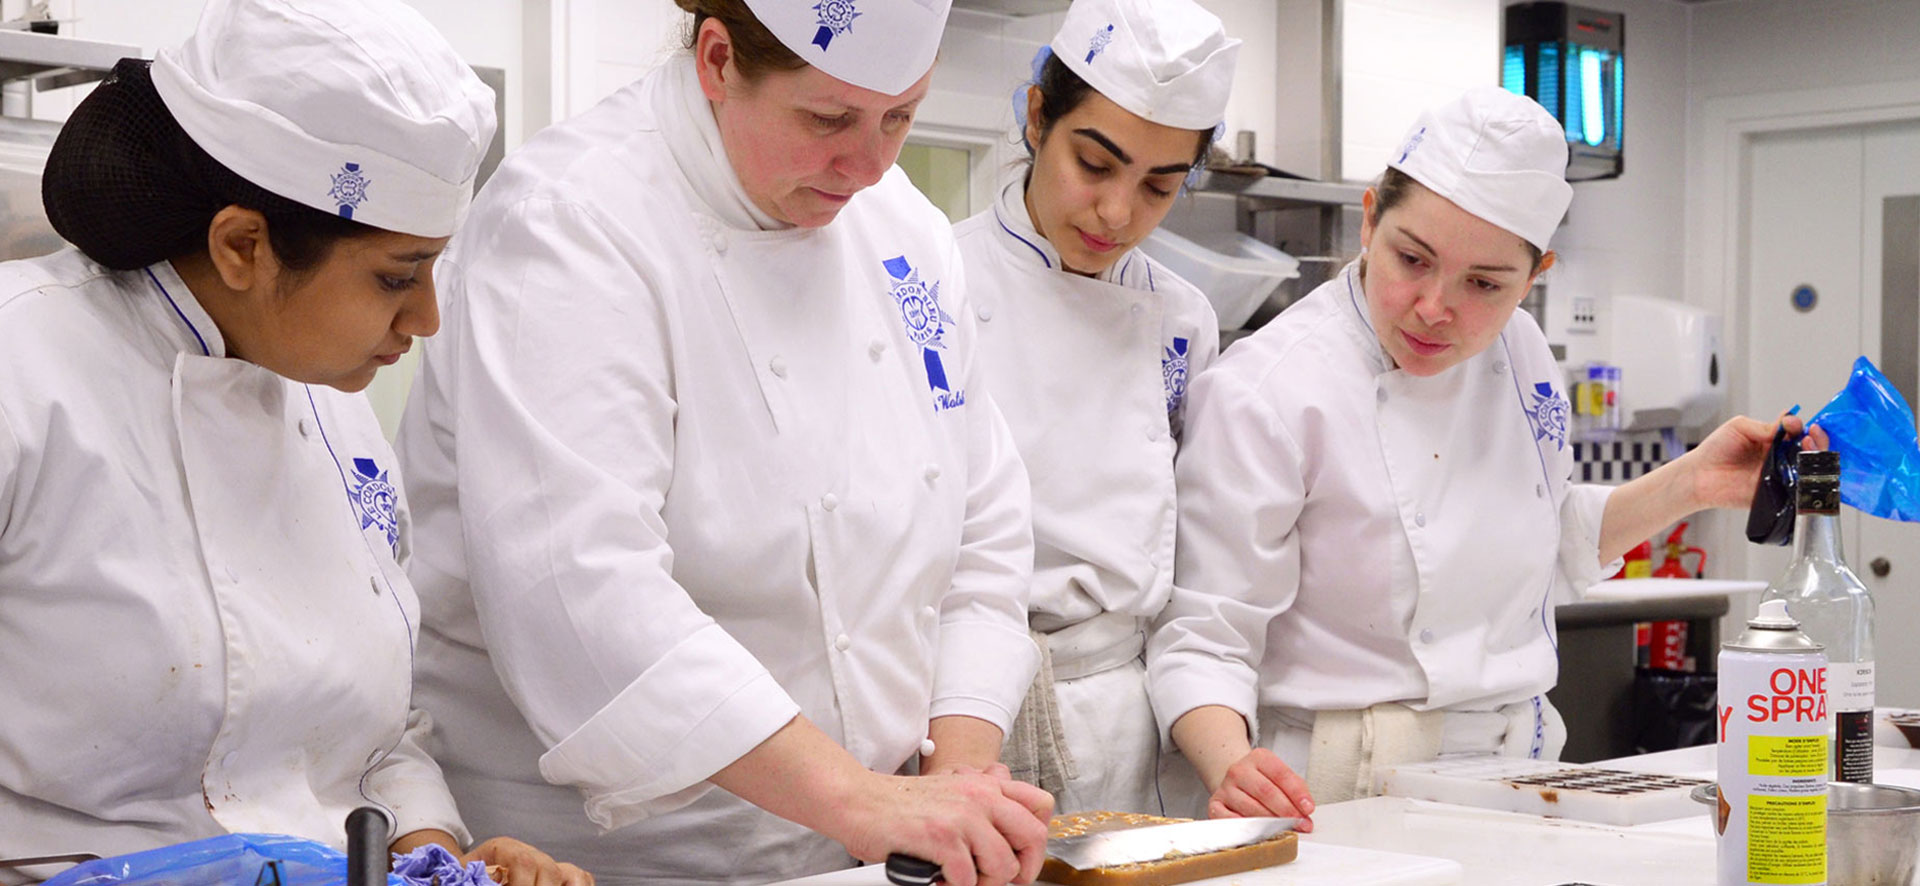 Le Cordon Bleu explain how to become a Pastry Chef